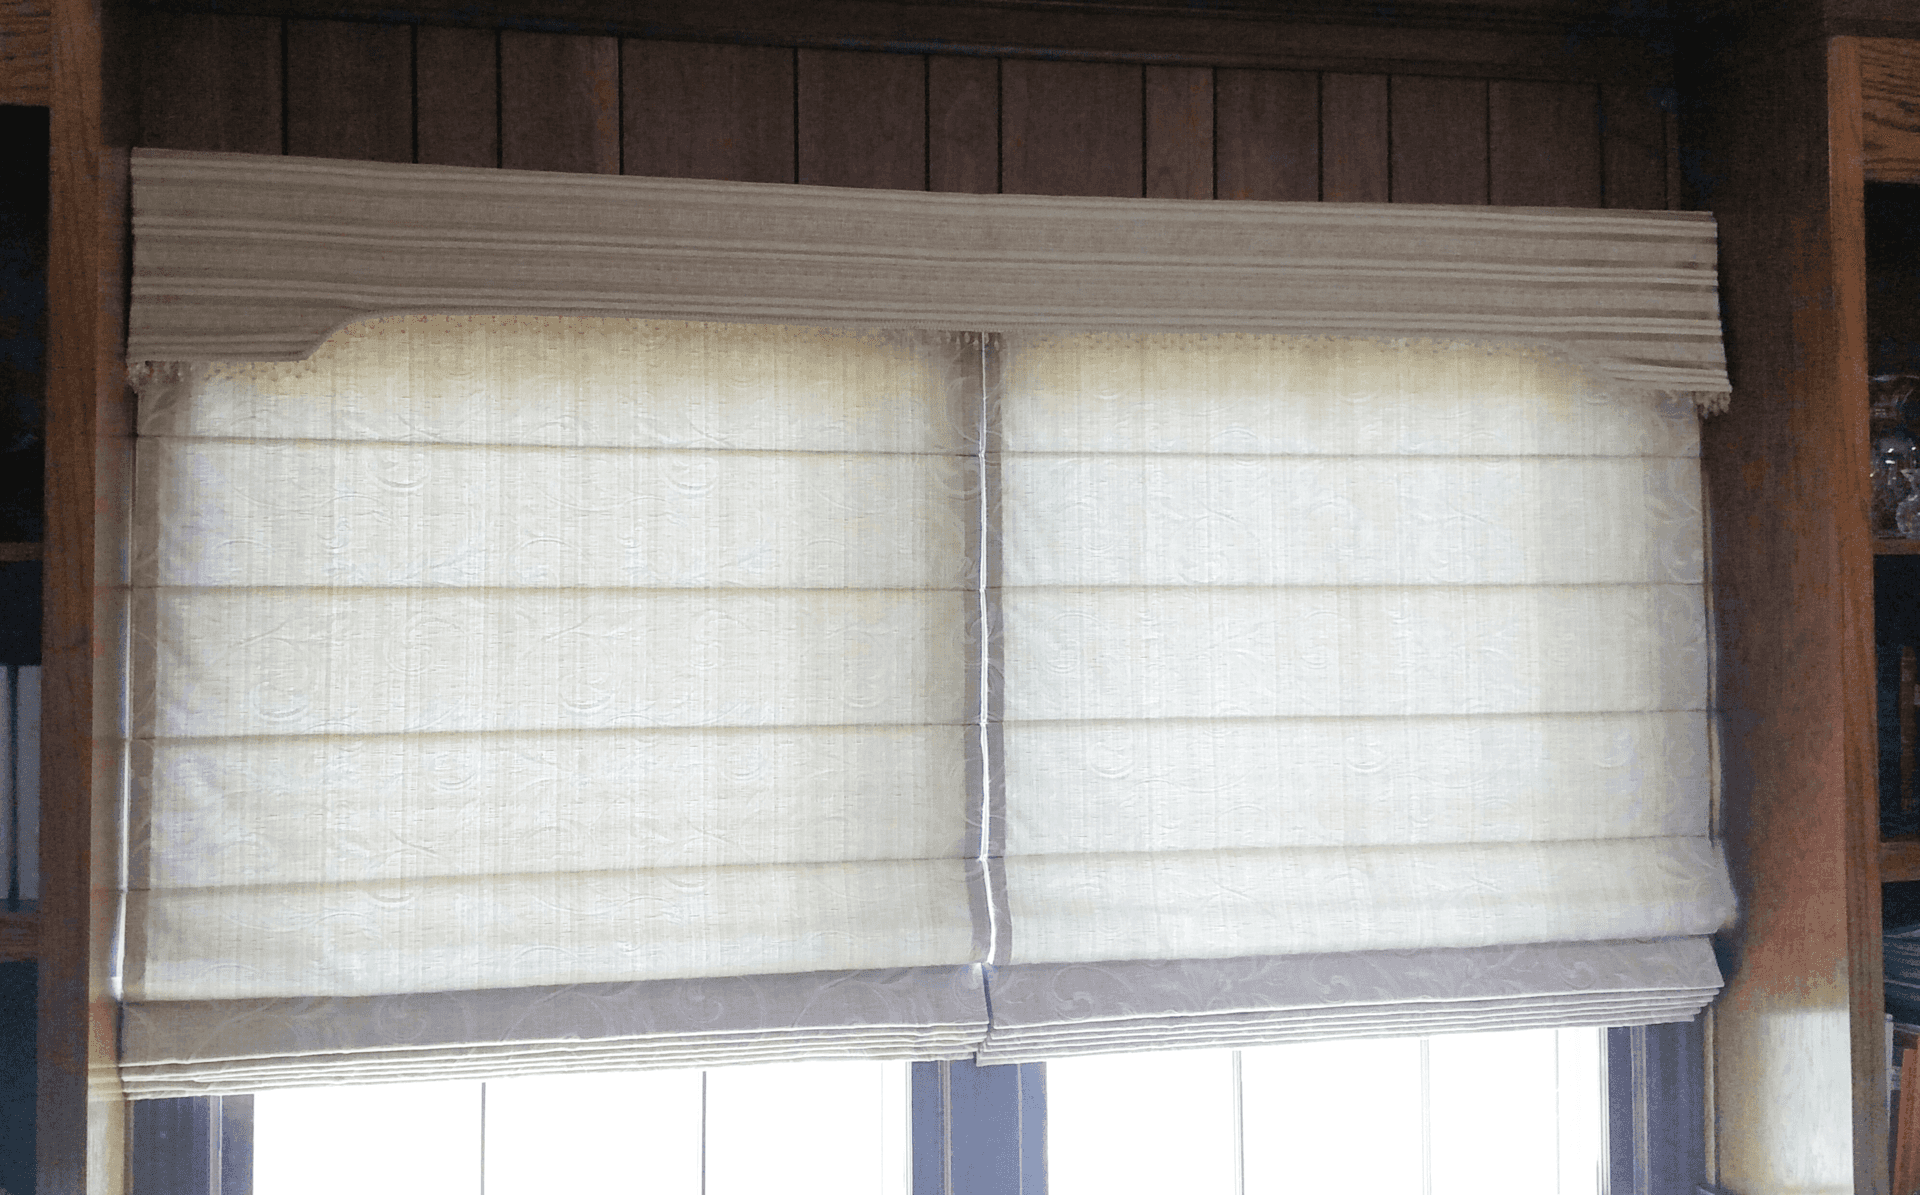 Blinds and Shades Lowes | Lowes Shades | Drum Shade Pendant Light Lowes